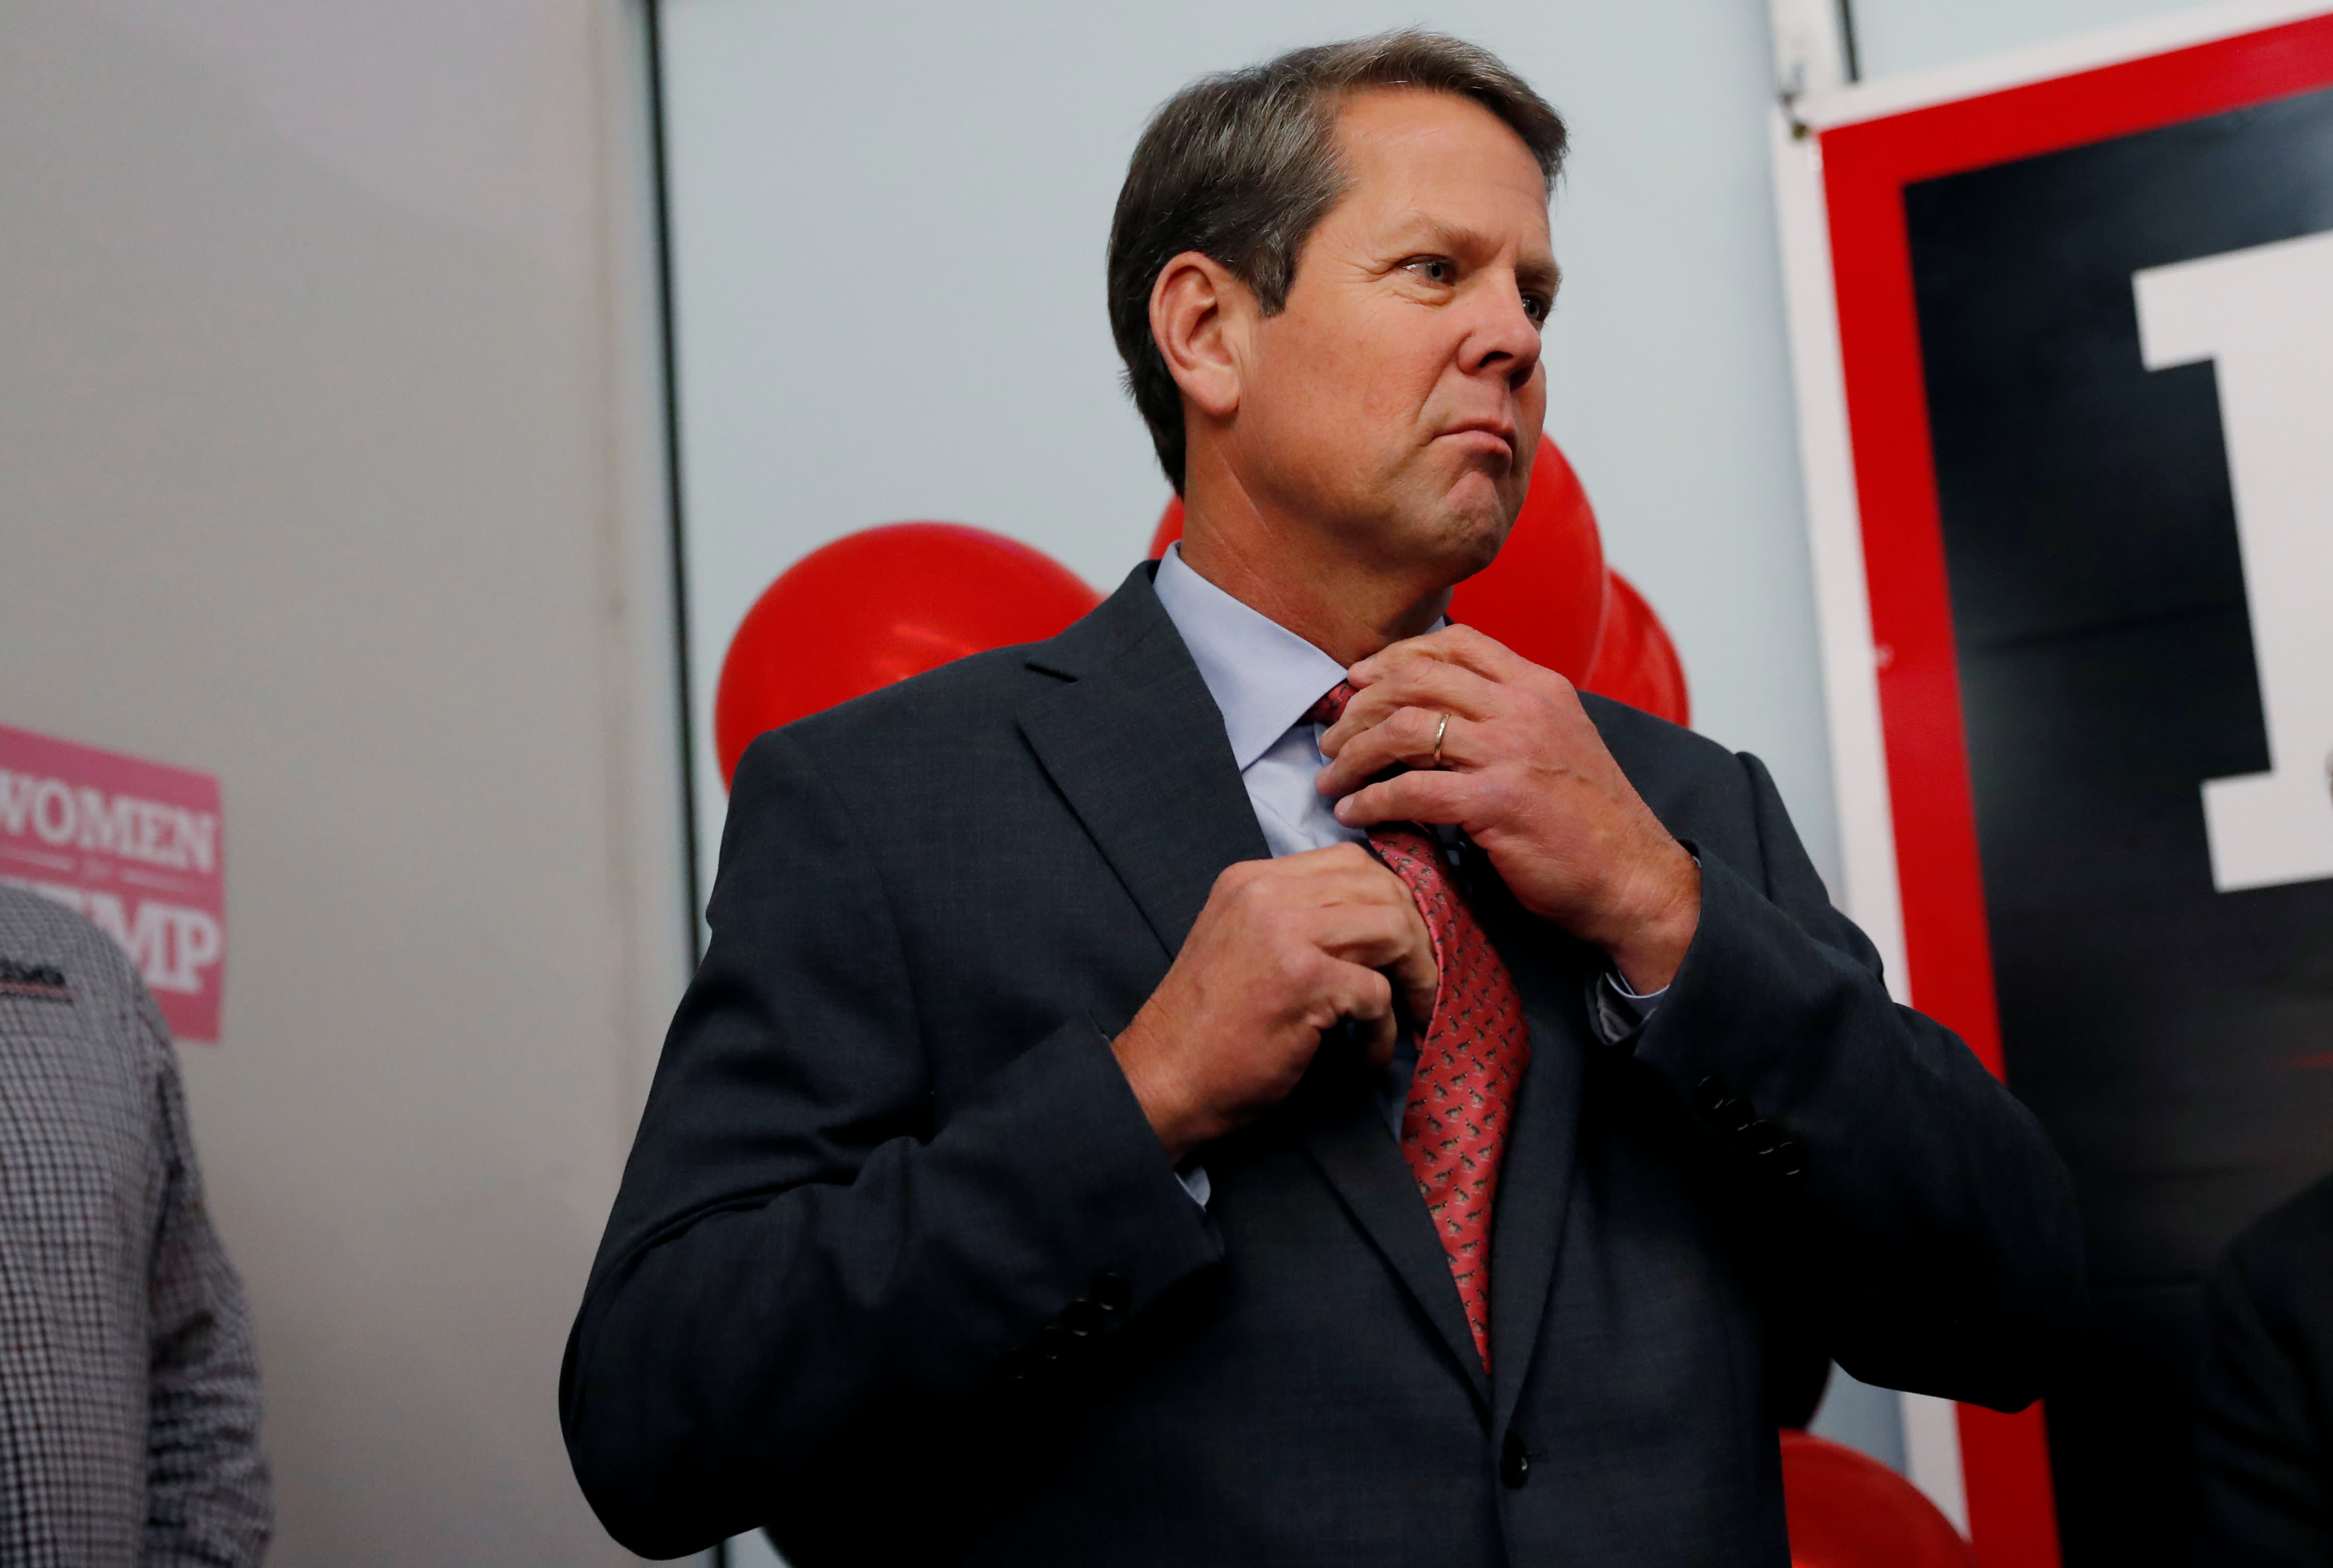 Georgia's GOP gubernatorial candidate Brian Kemp to resign as secretary of state